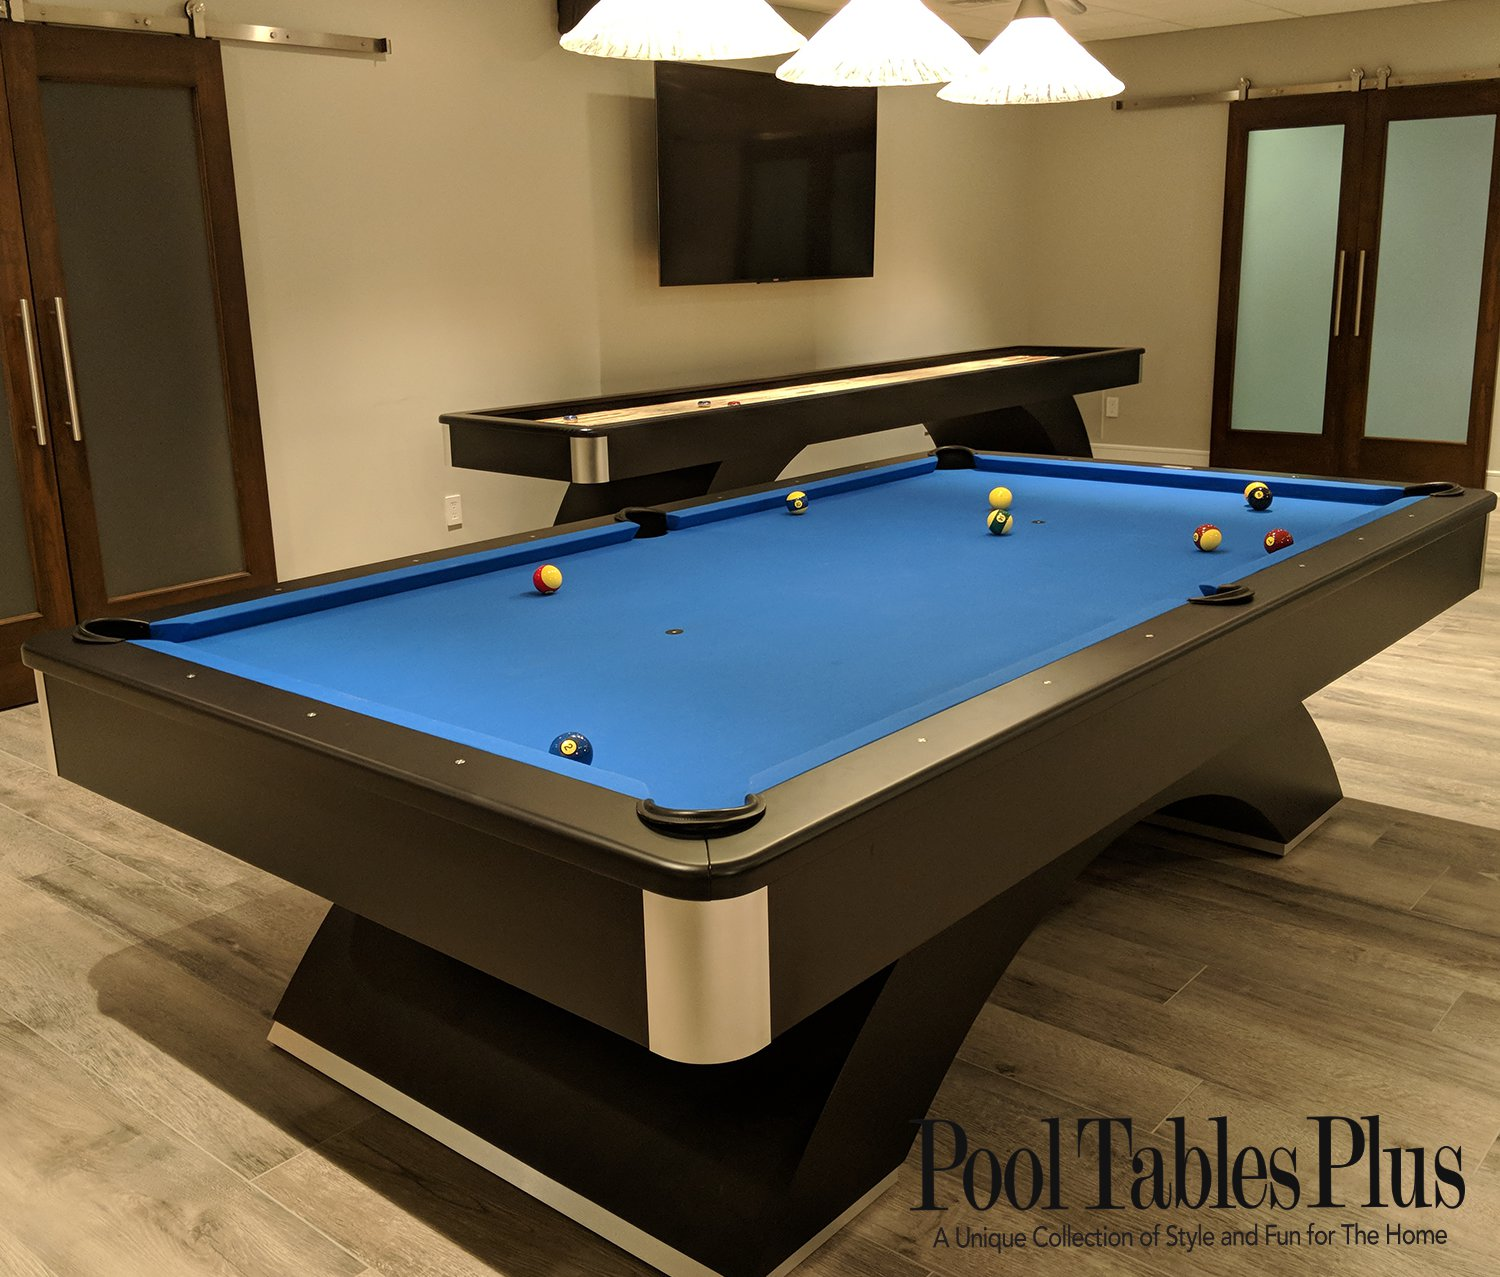 Olhausen Champion Pro III Waterfall Pool Table-Shop Olhausen Pool Tables